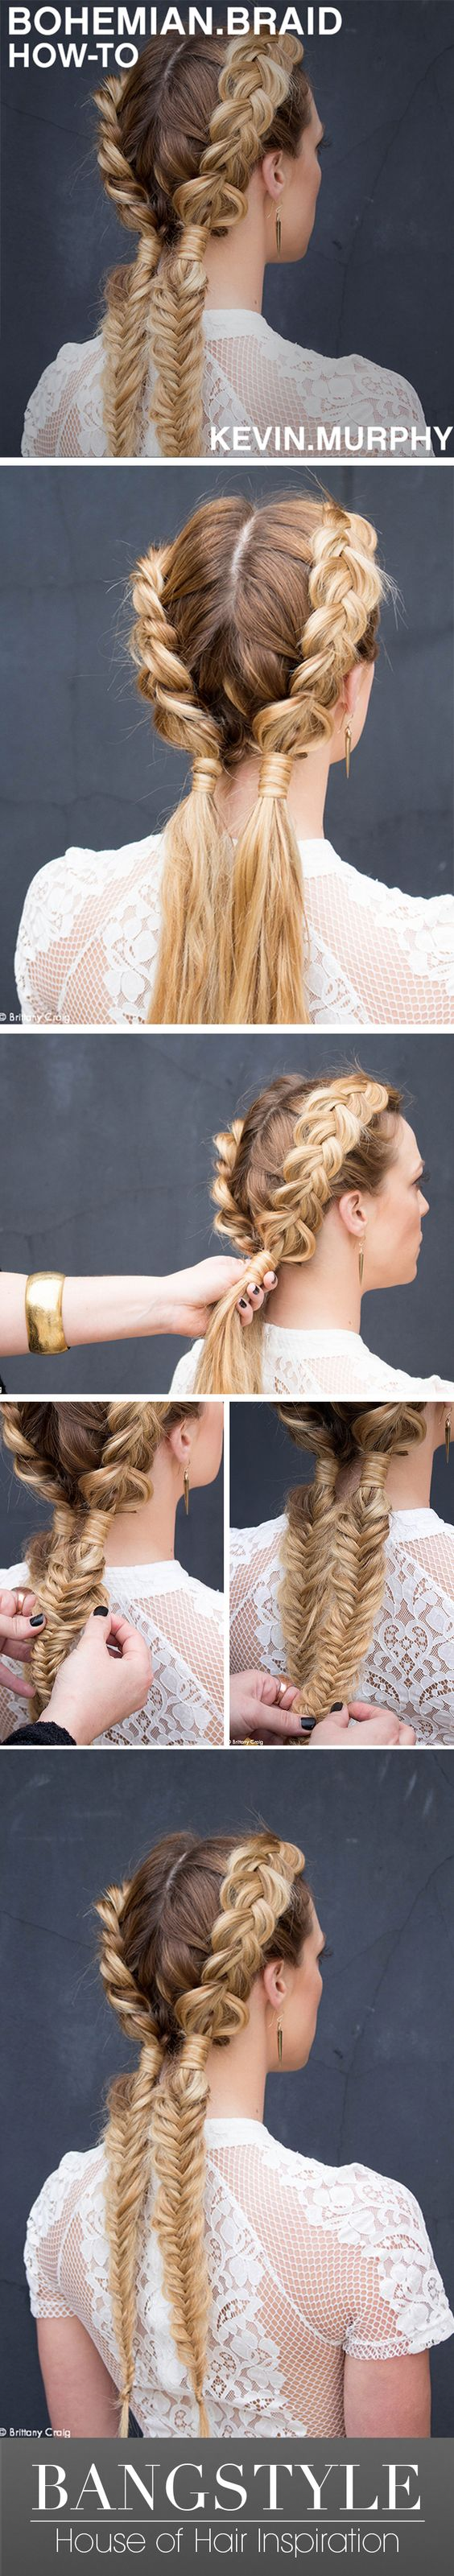 Bohemian braid via